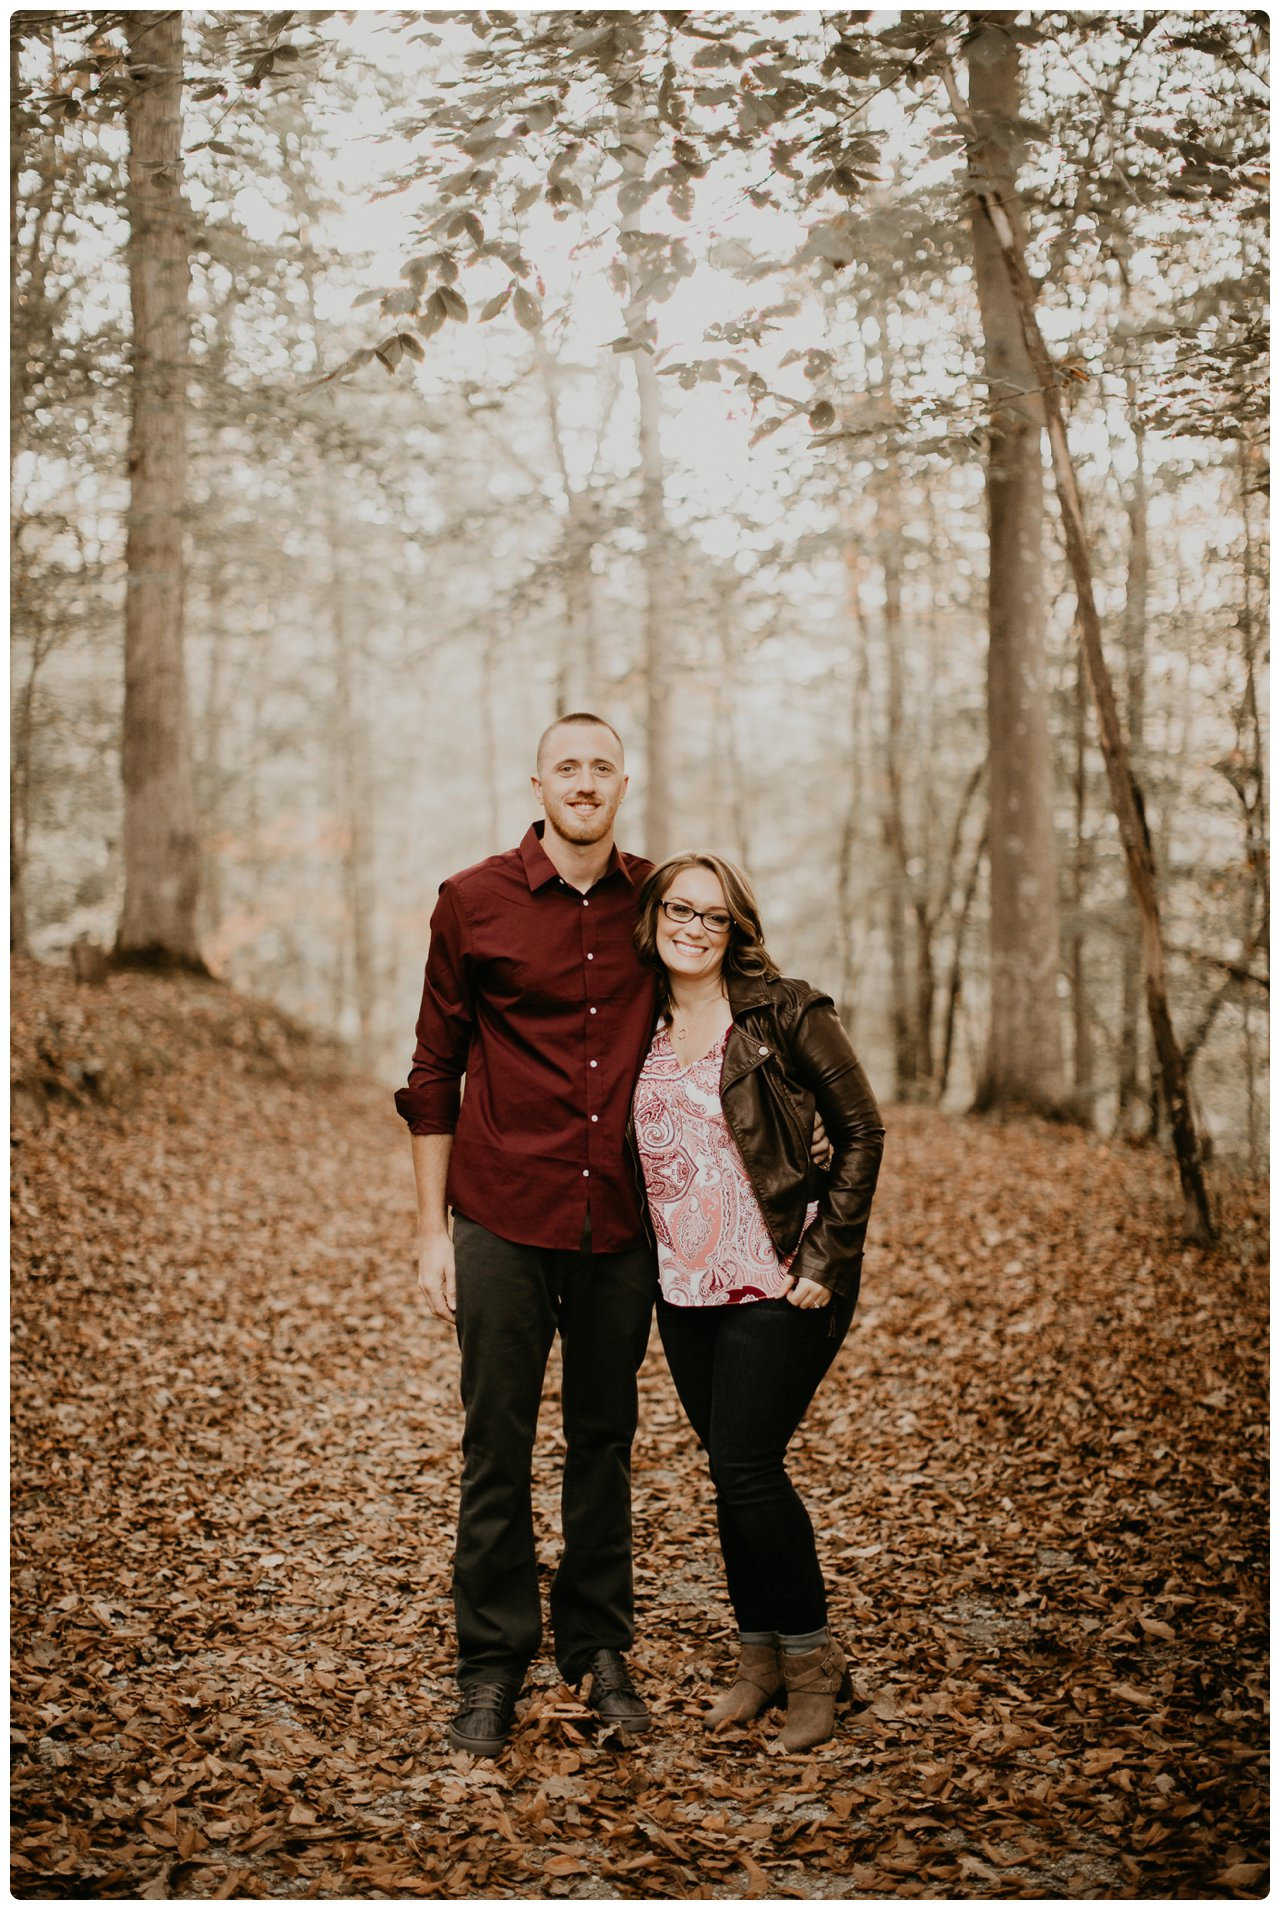 Engagement-Roanoke-Virginia-Pat-Cori-Photography-002.jpg